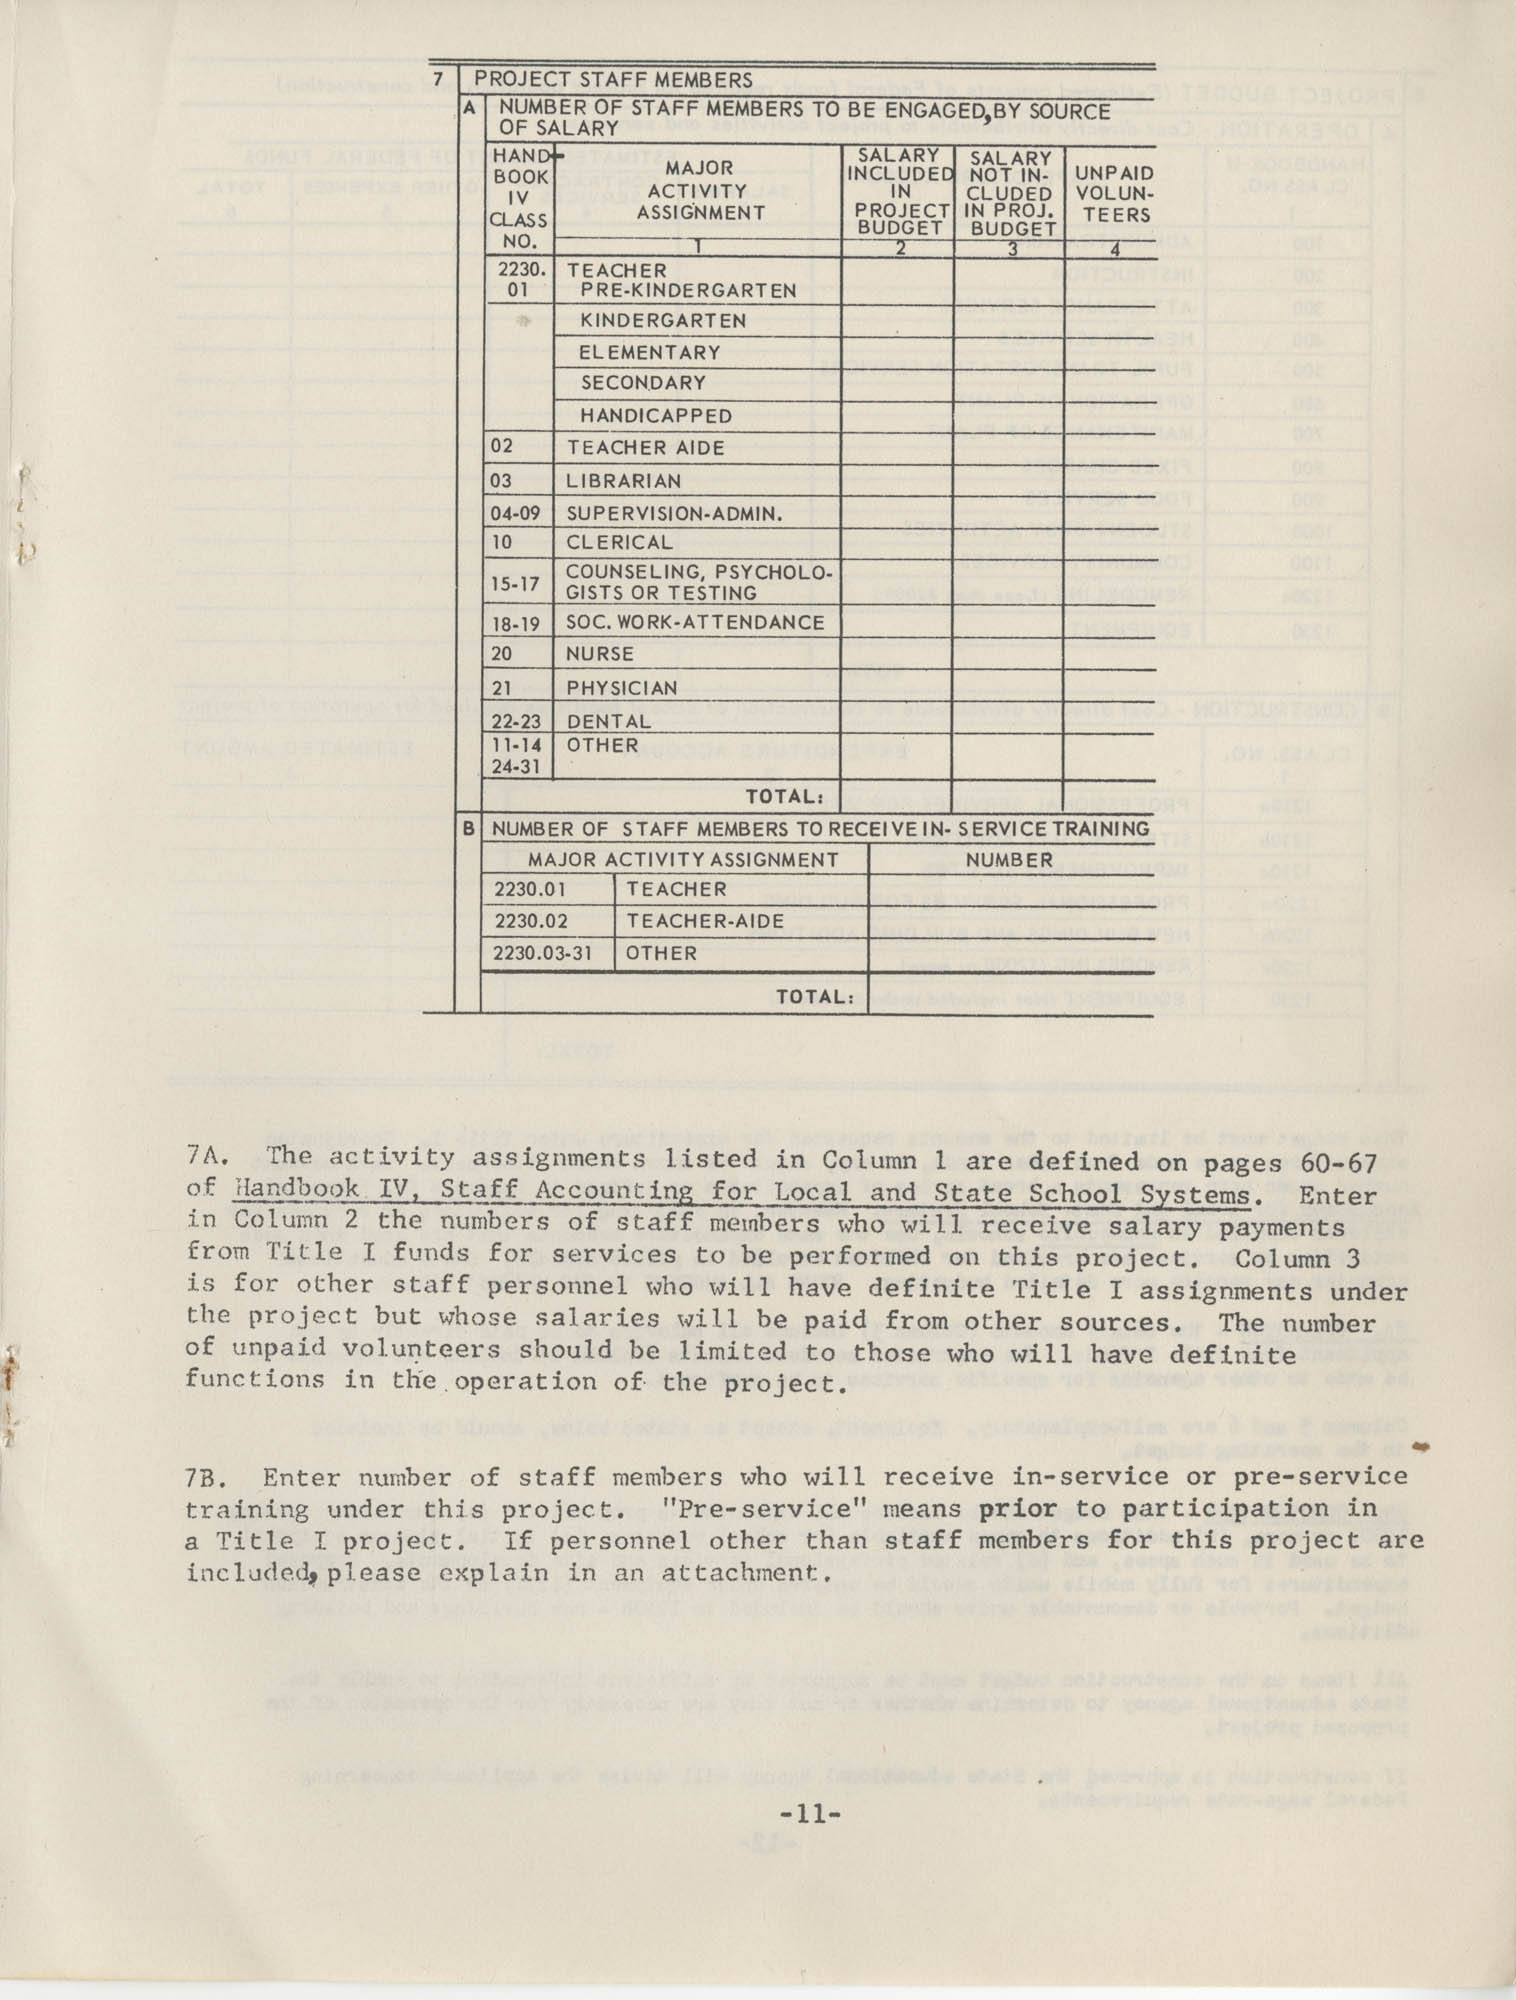 Instructions for Title 1, 1967 Application Forms, Page 11